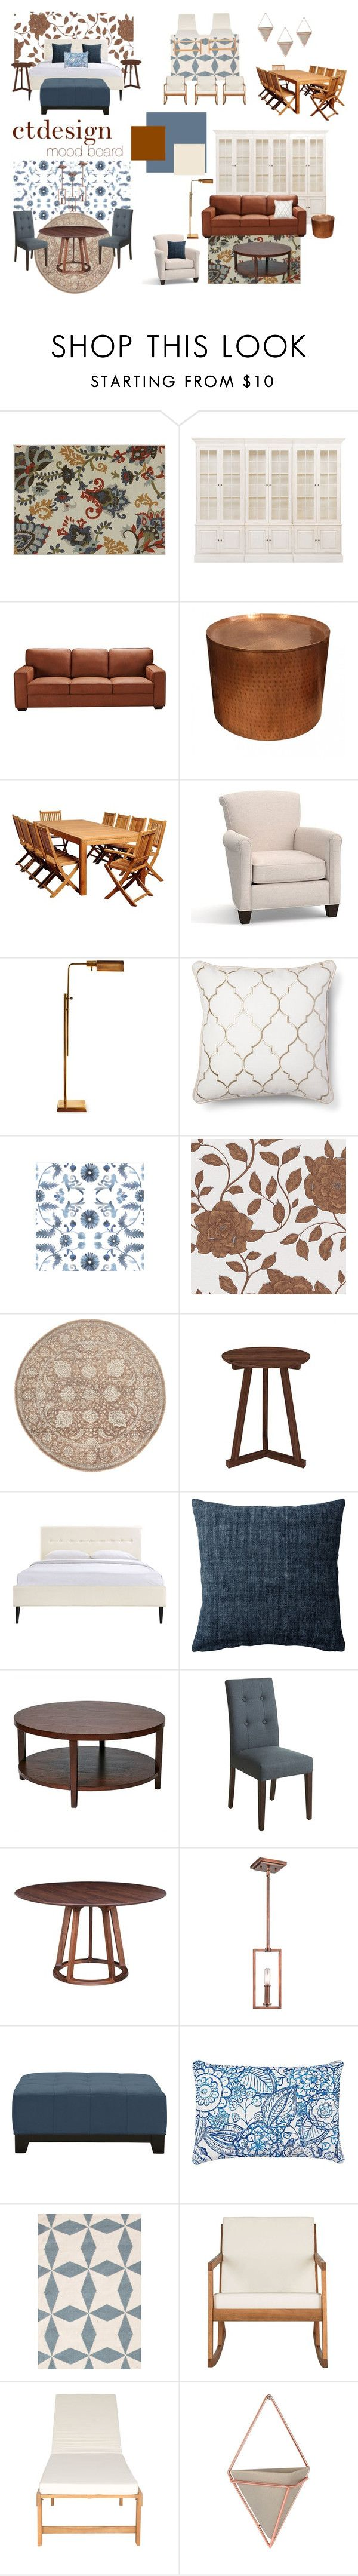 """""""Arts & Craft Movement inspired apartment"""" by christietanupi on Polyvore featuring interior, interiors, interior design, home, home decor, interior decorating, Ethan Allen, Universal Lighting and Decor, Pottery Barn and Serena & Lily"""